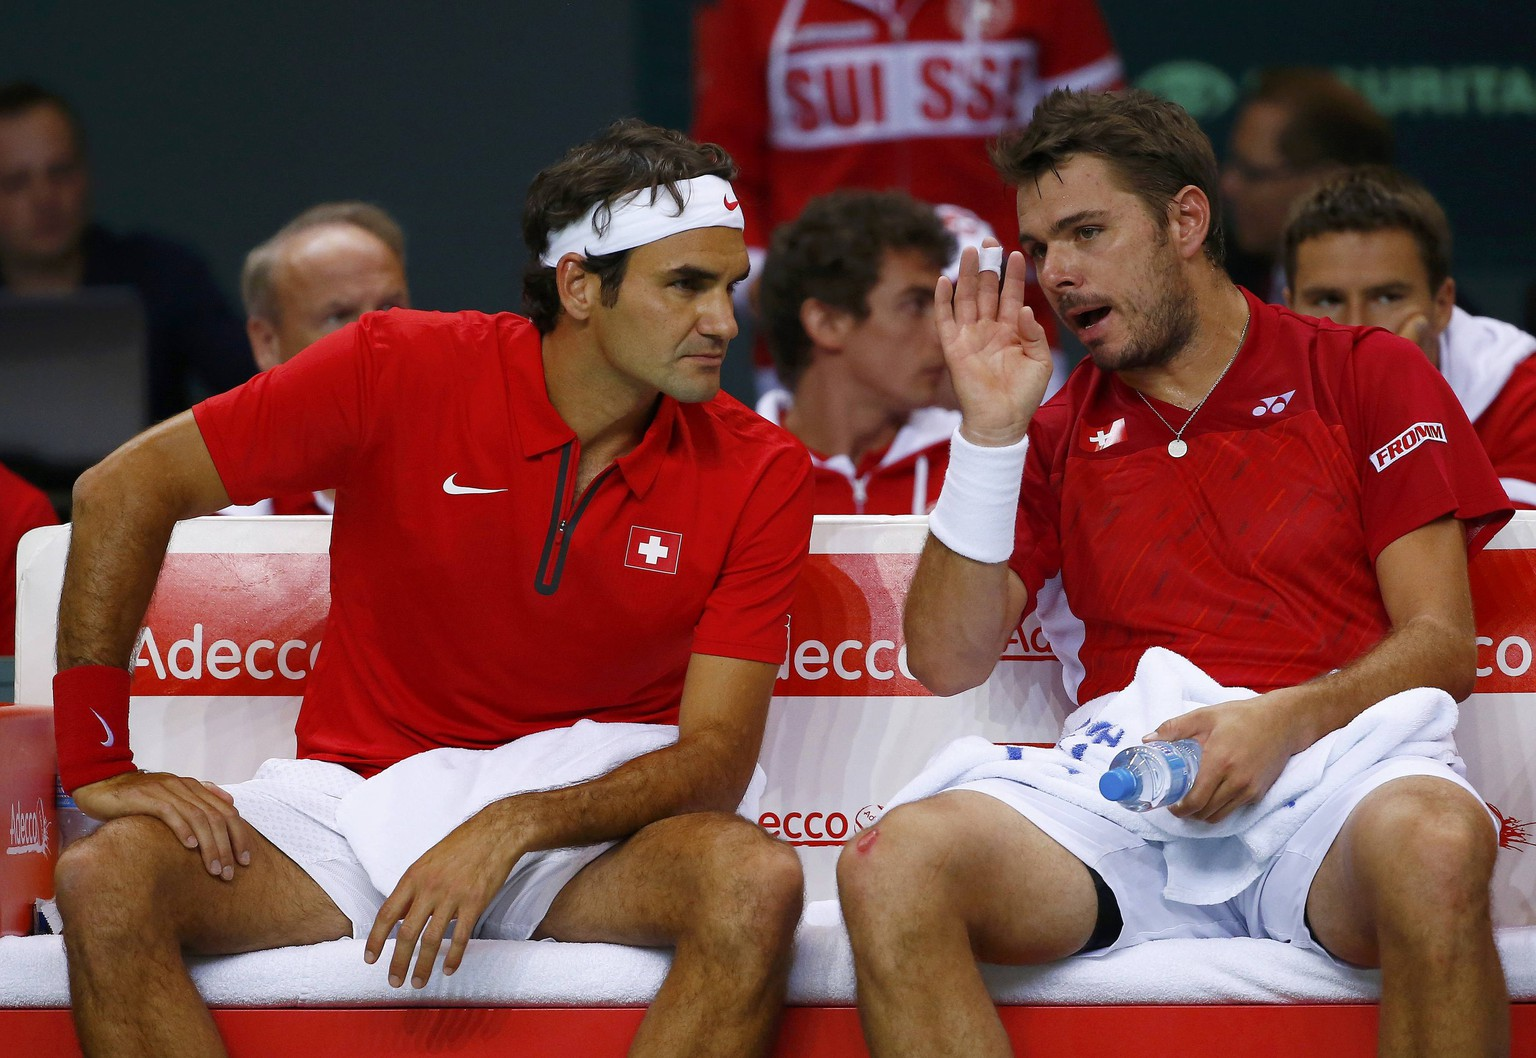 Switzerland's Stanislas Wawrinka (R) talks to Roger Federer during their Davis Cup quarter-final tennis match against Andrey Golubev and Aleksandr Nedovyvesov of Kazakhstan in Geneva April 5, 2014.  REUTERS/Denis Balibouse (SWITZERLAND  - Tags: SPORT TENNIS)